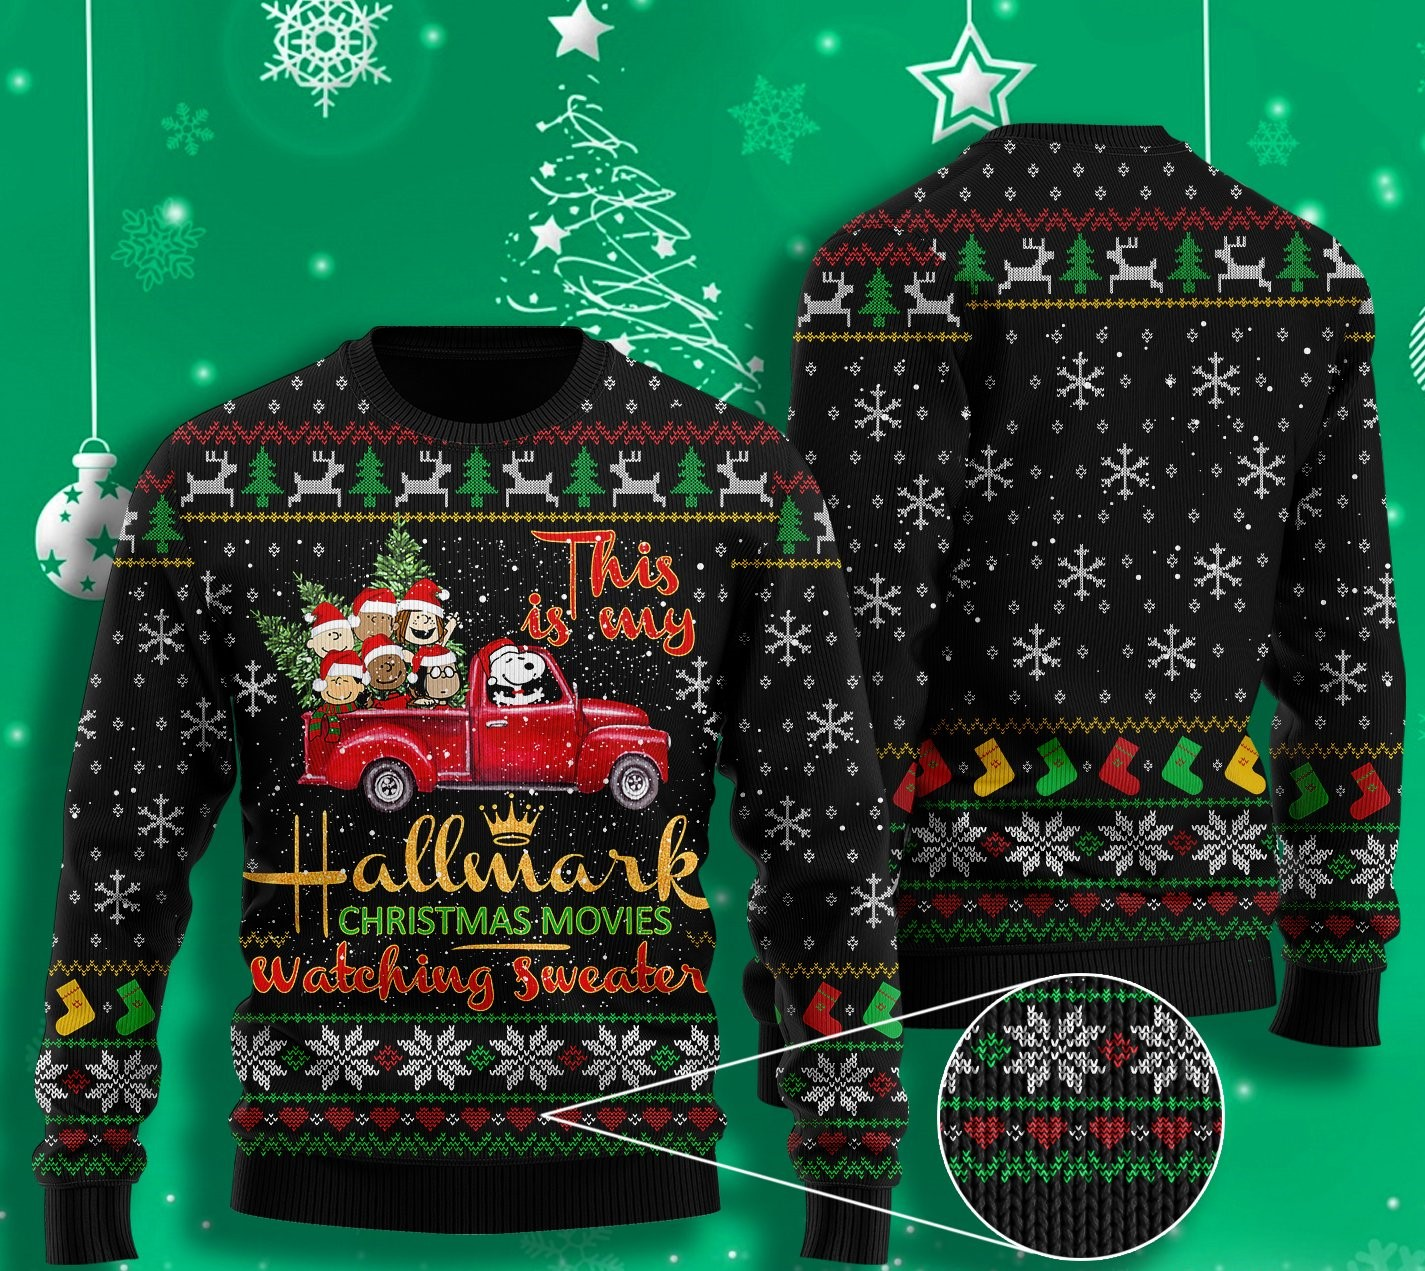 this is my hallmark christmas movie watching all over printed ugly christmas sweater 2 - Copy (2)